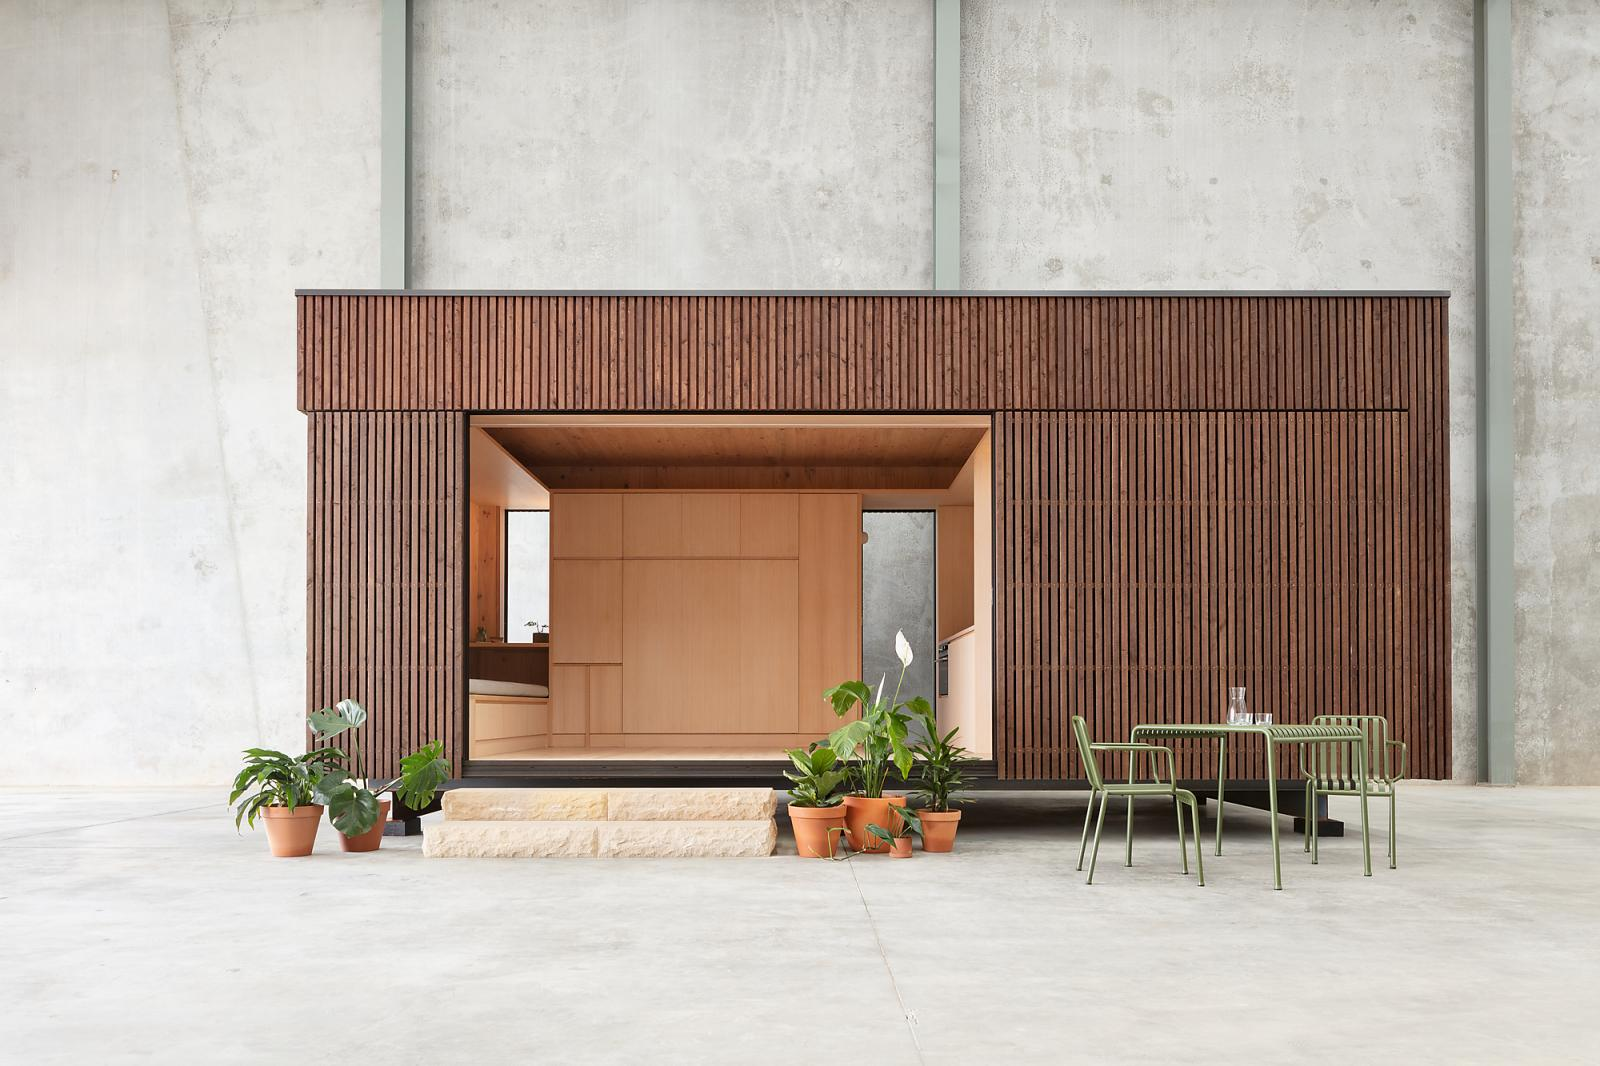 Minima is a stylish, efficient and practical new addition to the prefabricated home family